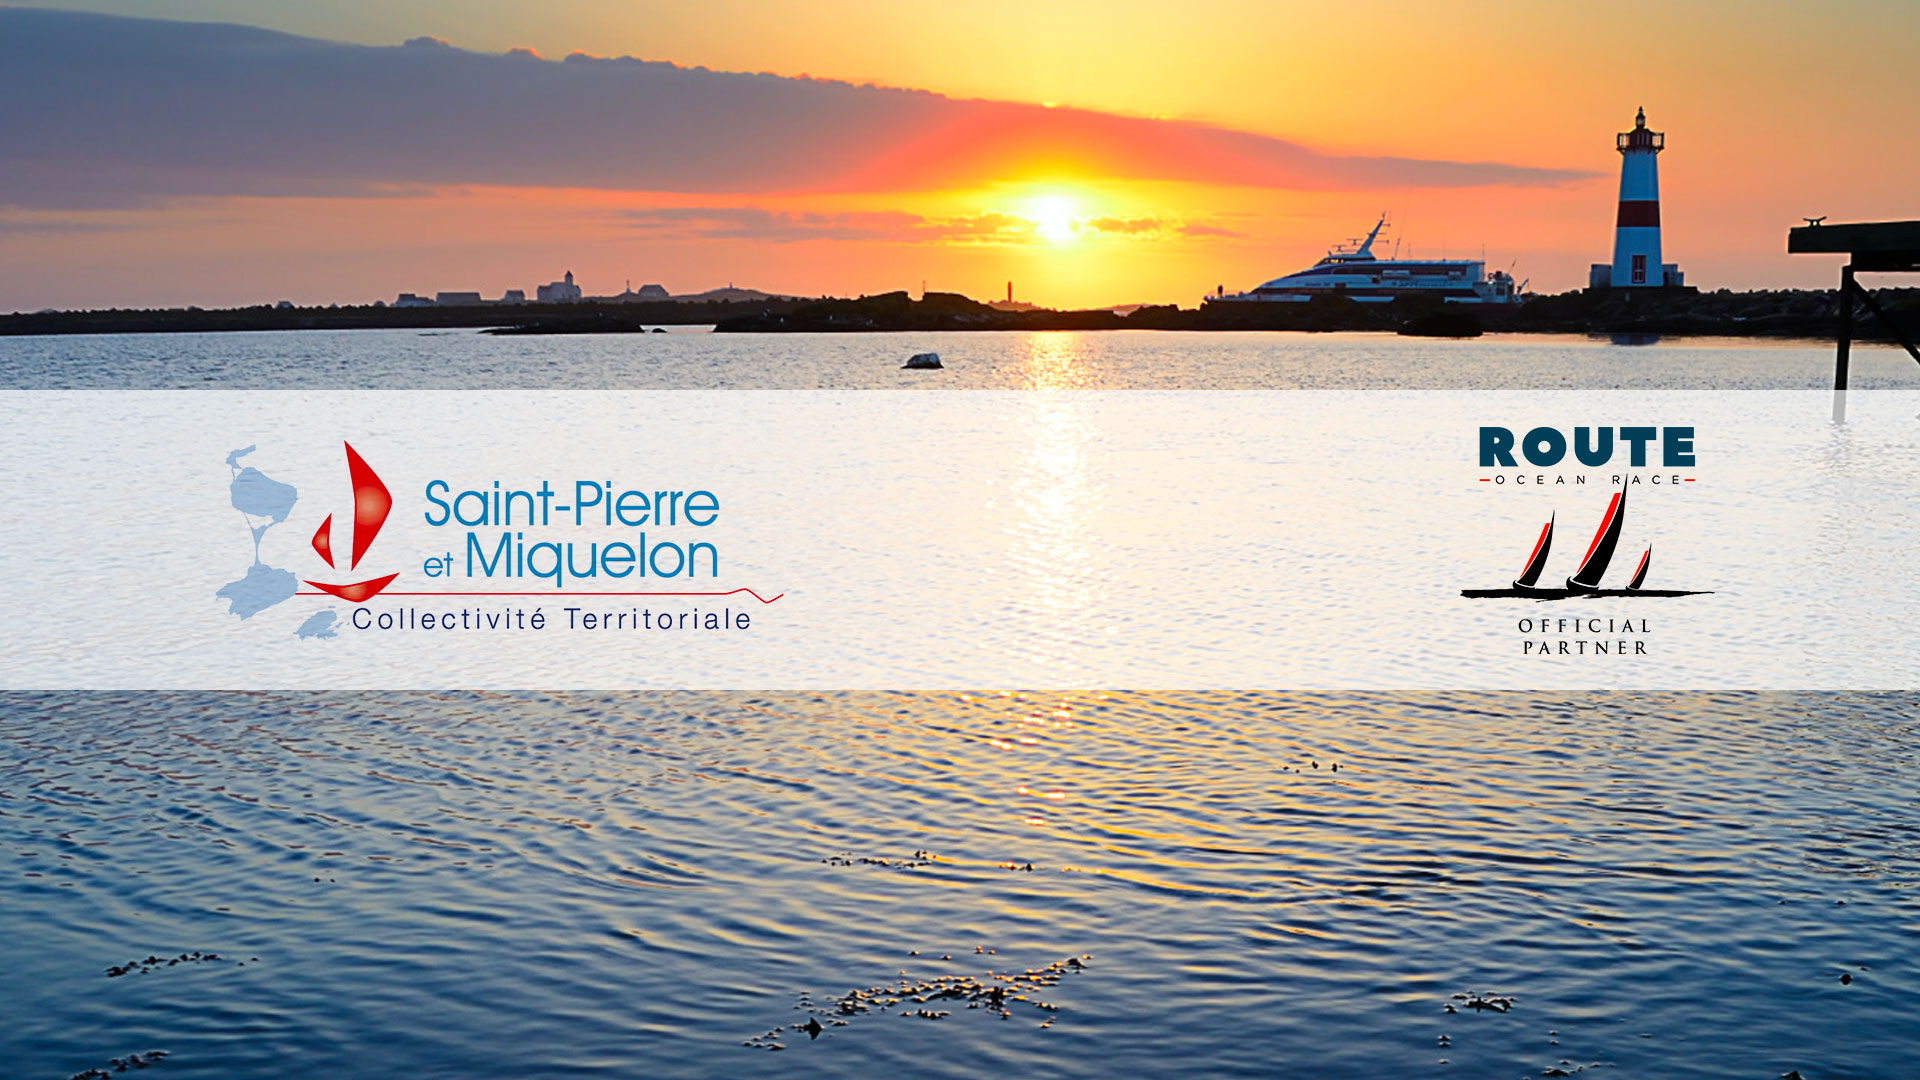 The Collectivité Territoriale de Saint-Pierre et Mqiuelon, Official PArtner of ROute Saint-Pierre et Miquelon